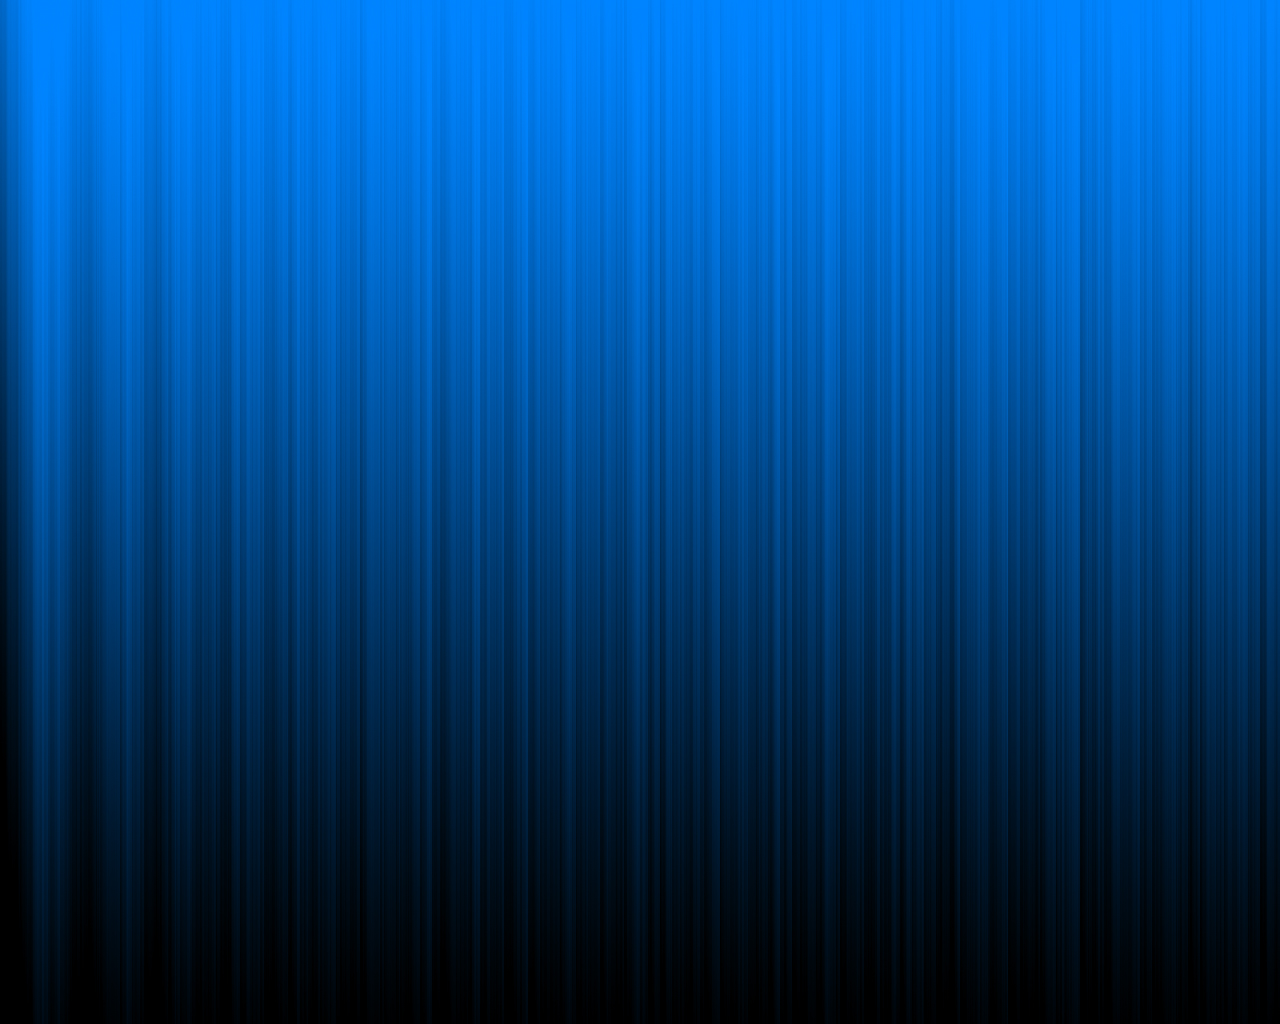 wallpaper bluos blue wallpaper